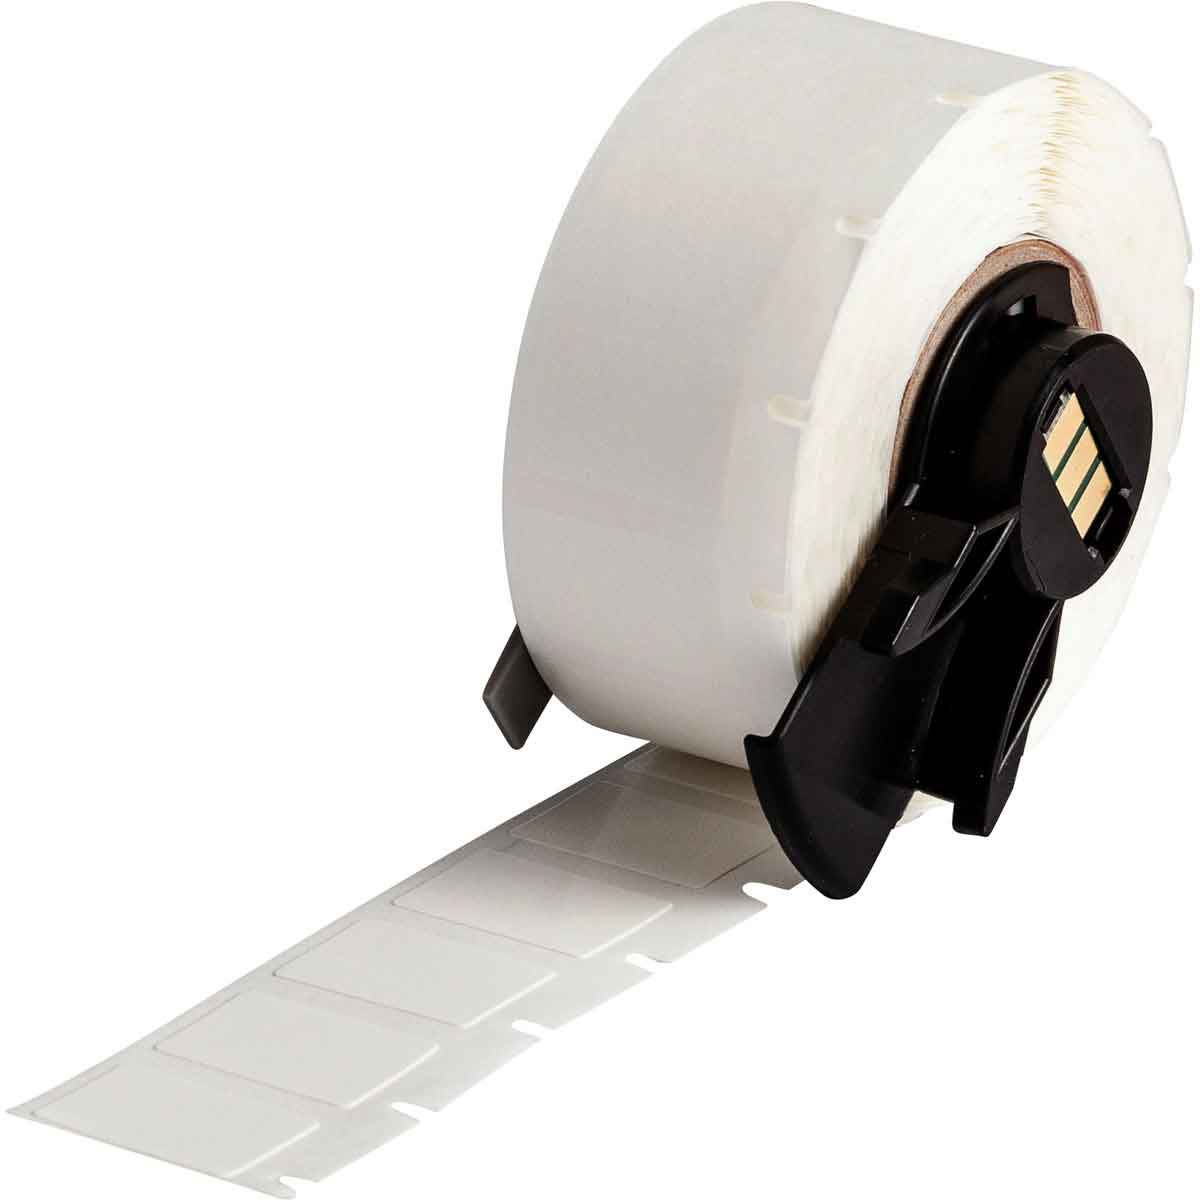 "Brady PTL-11-498 White Repositionable Vinyl Cloth Labels for TLS2200 / TLS-PC Link Printers, .50"" x .75"" label, 16-10ga wire"